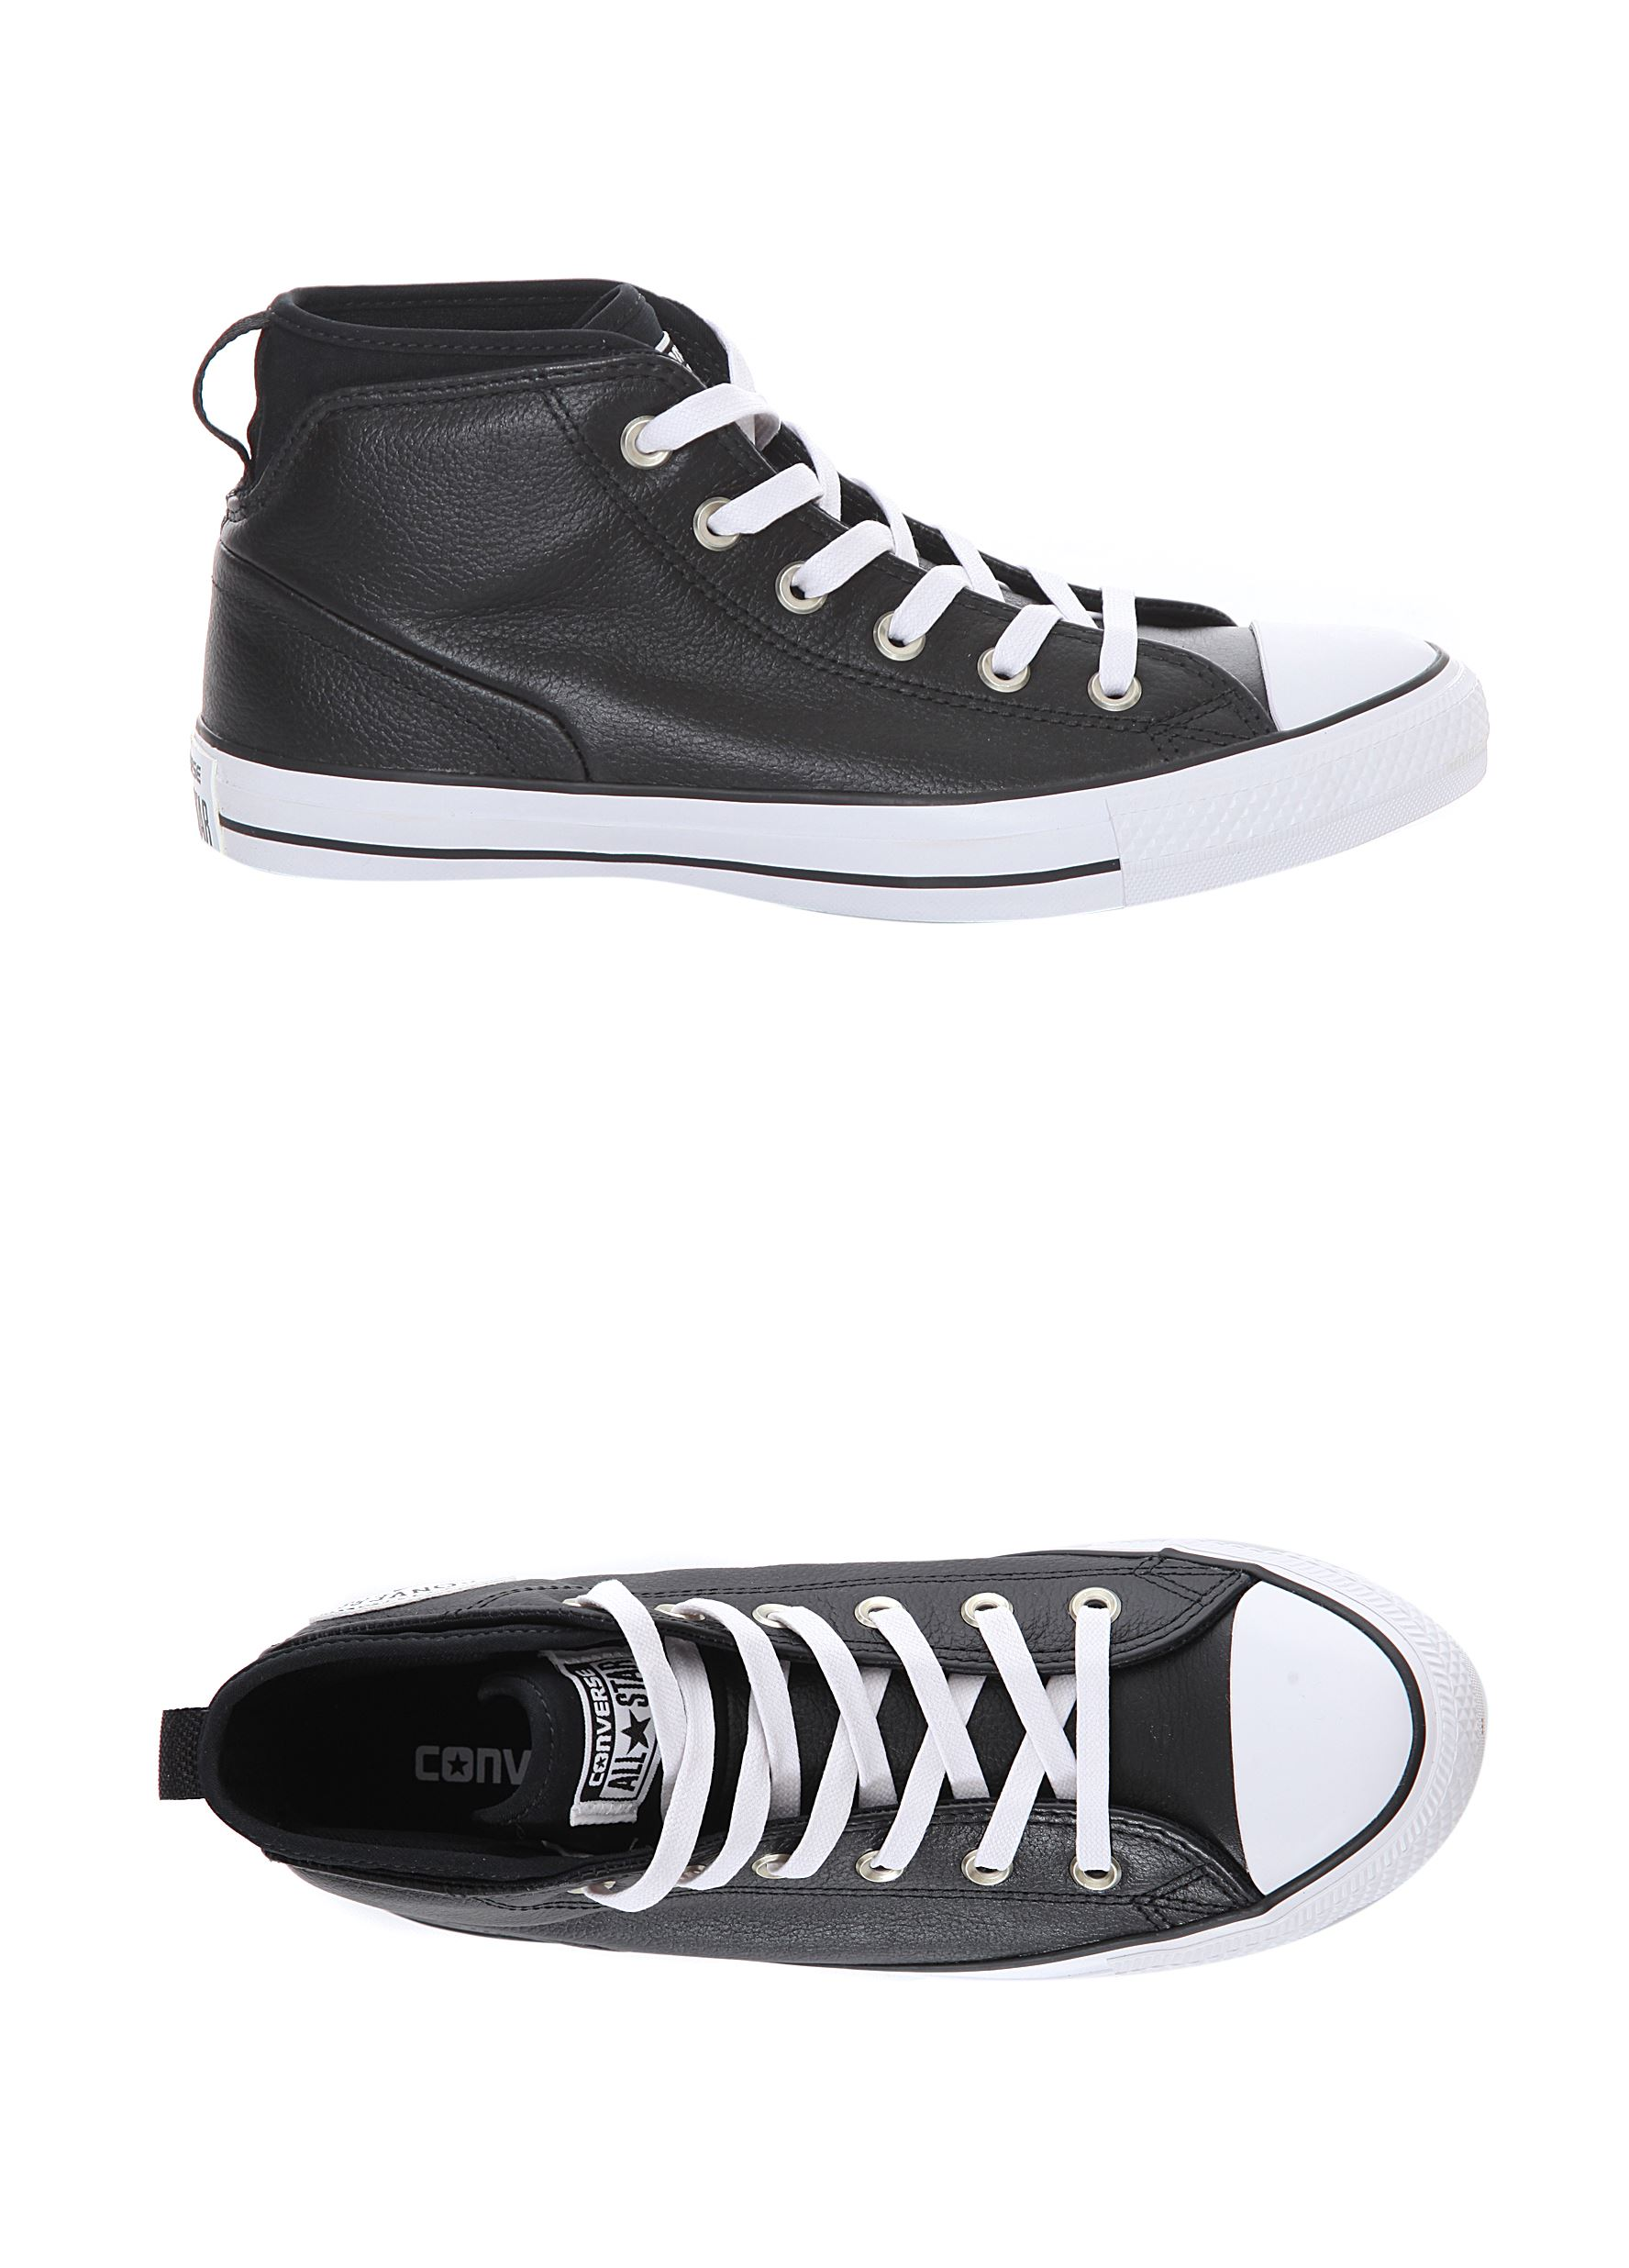 Converse All Star & More - Unisex Ημιμποτάκια CONVERSE